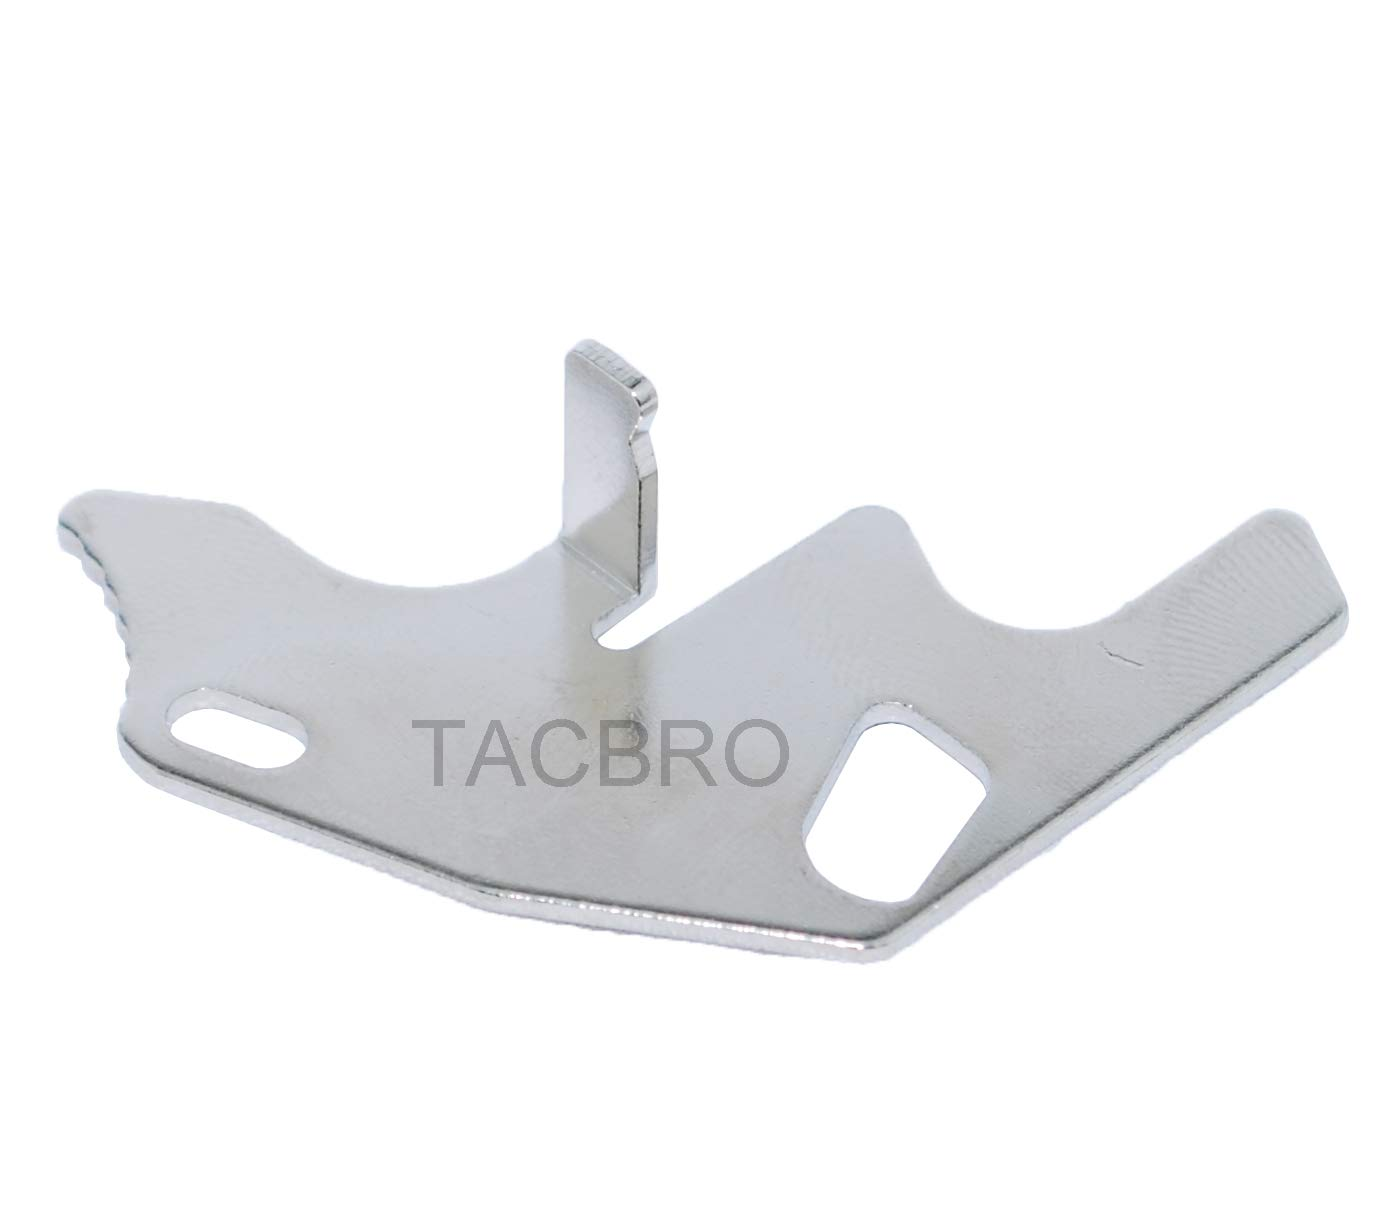 TACBRO Stainless Steel Ruger 10//22 Auto Release Plate Replacement Accessories